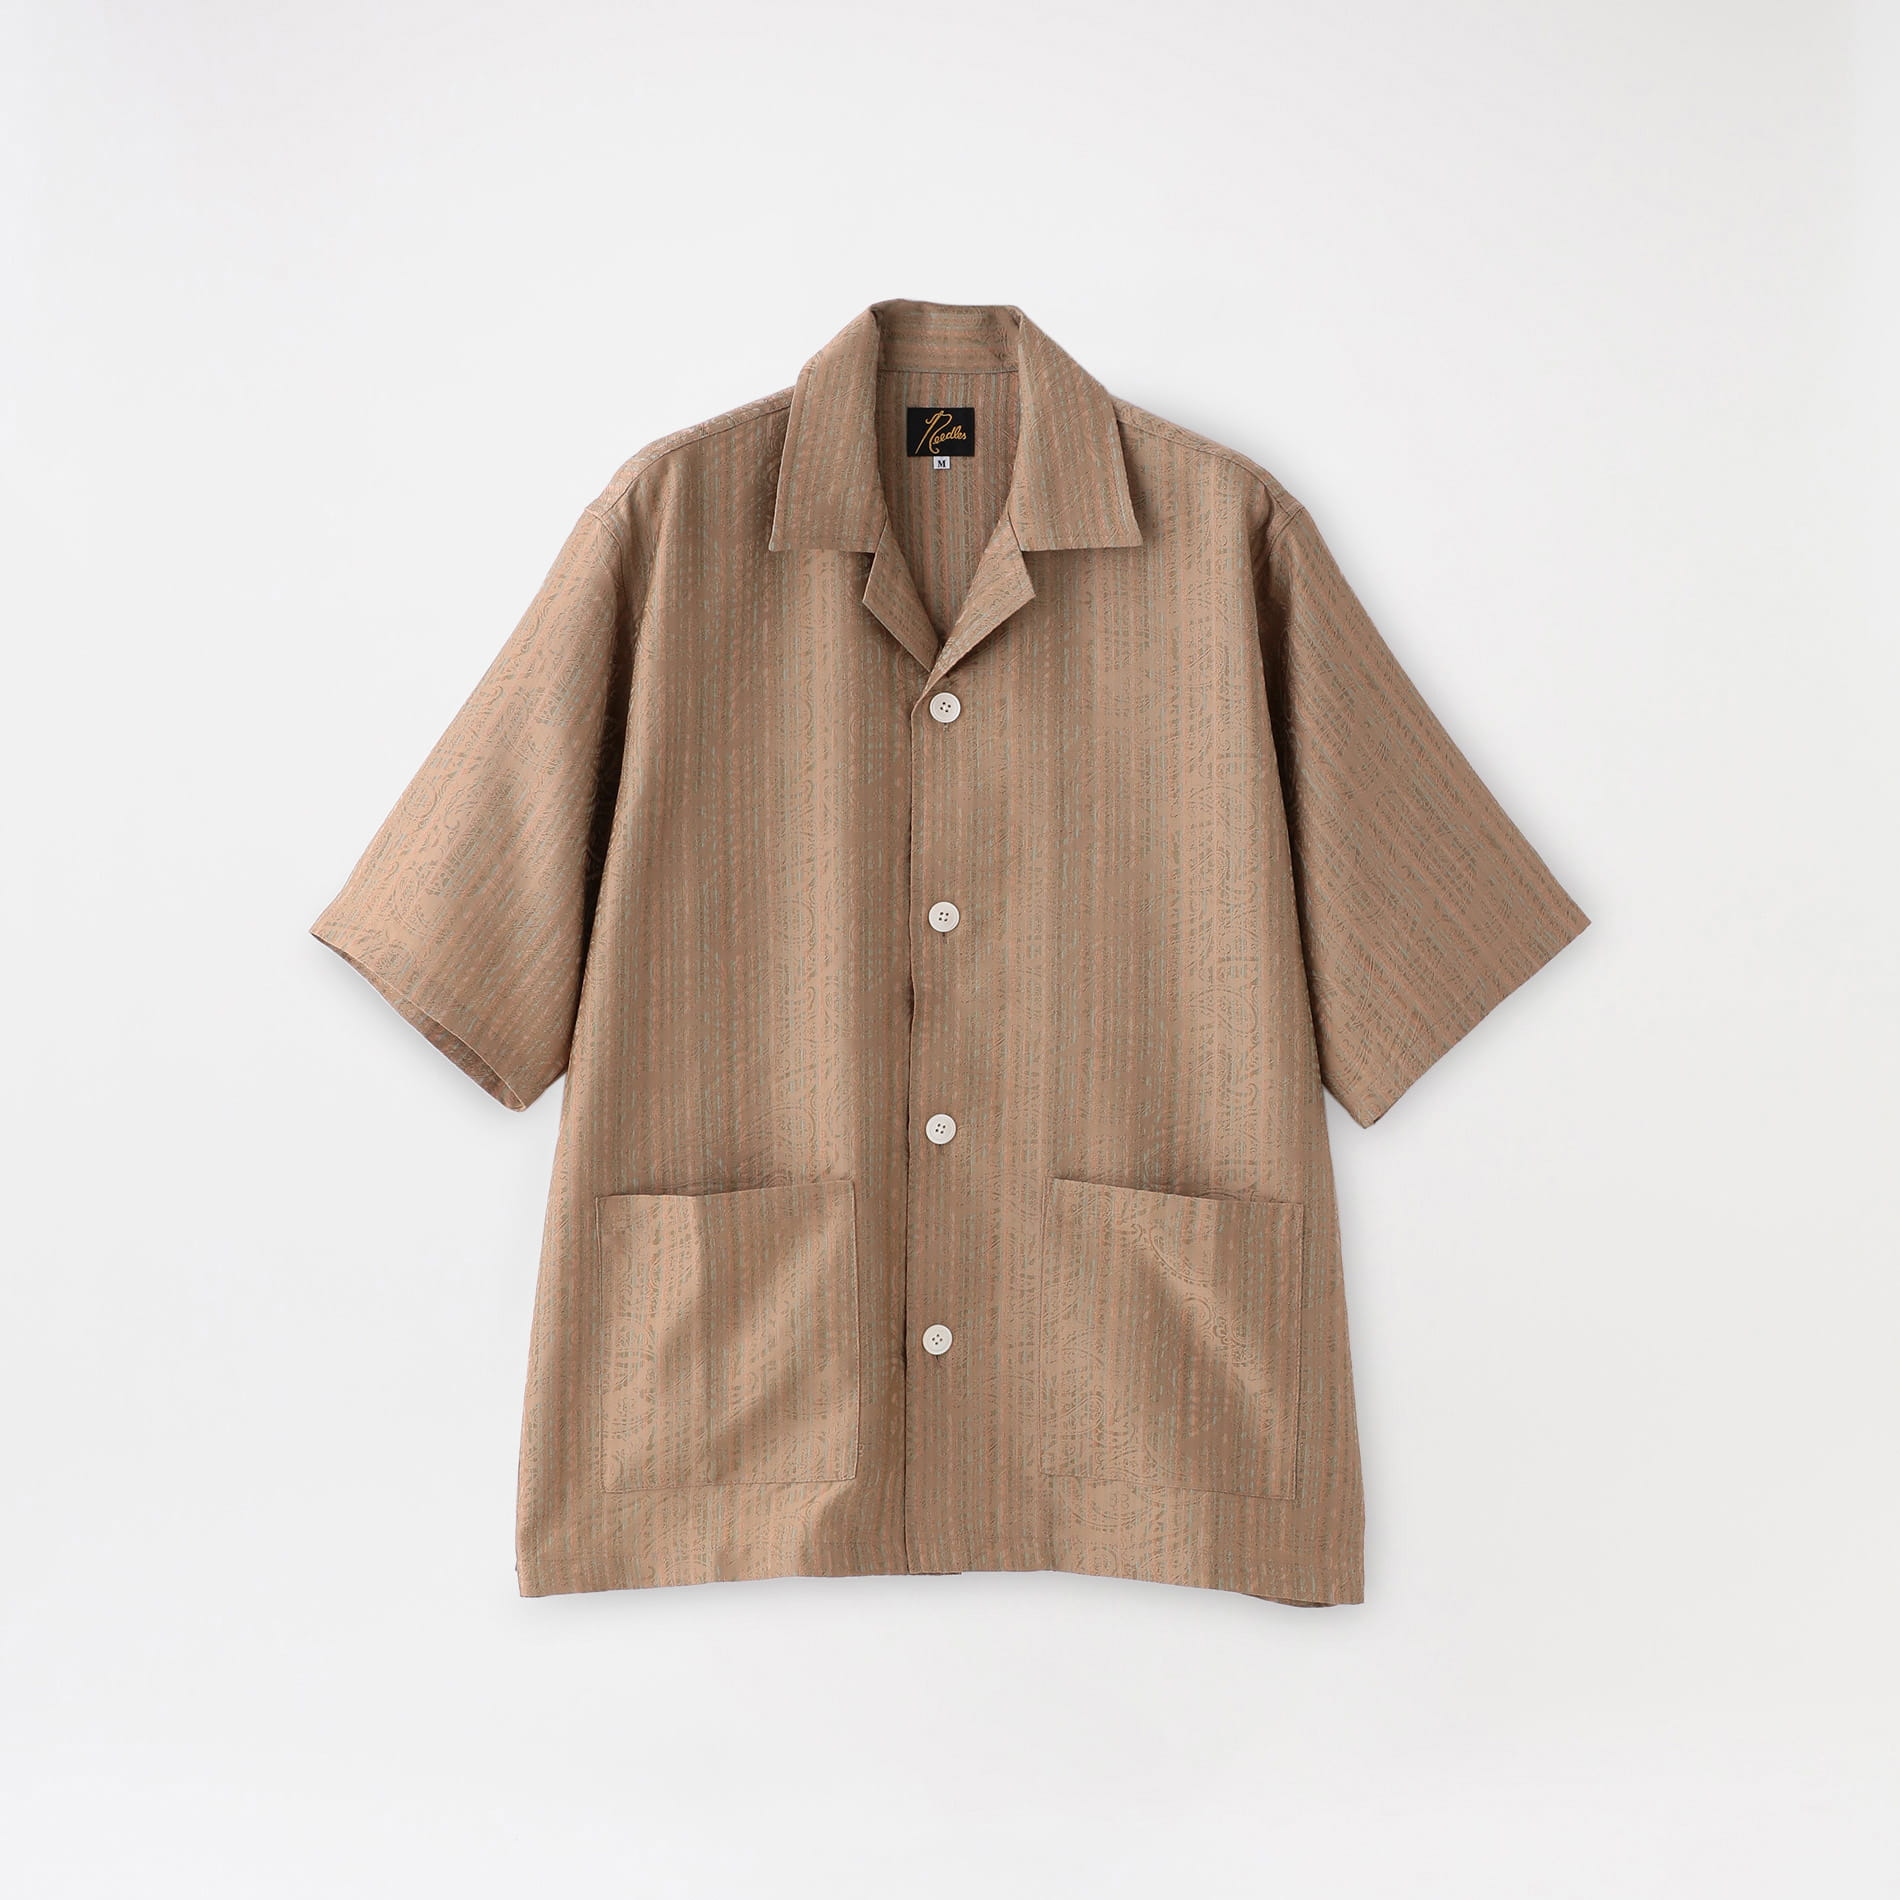 【Needles】MEN シャツ Cabana Shirt - Paisley Jq. IN085